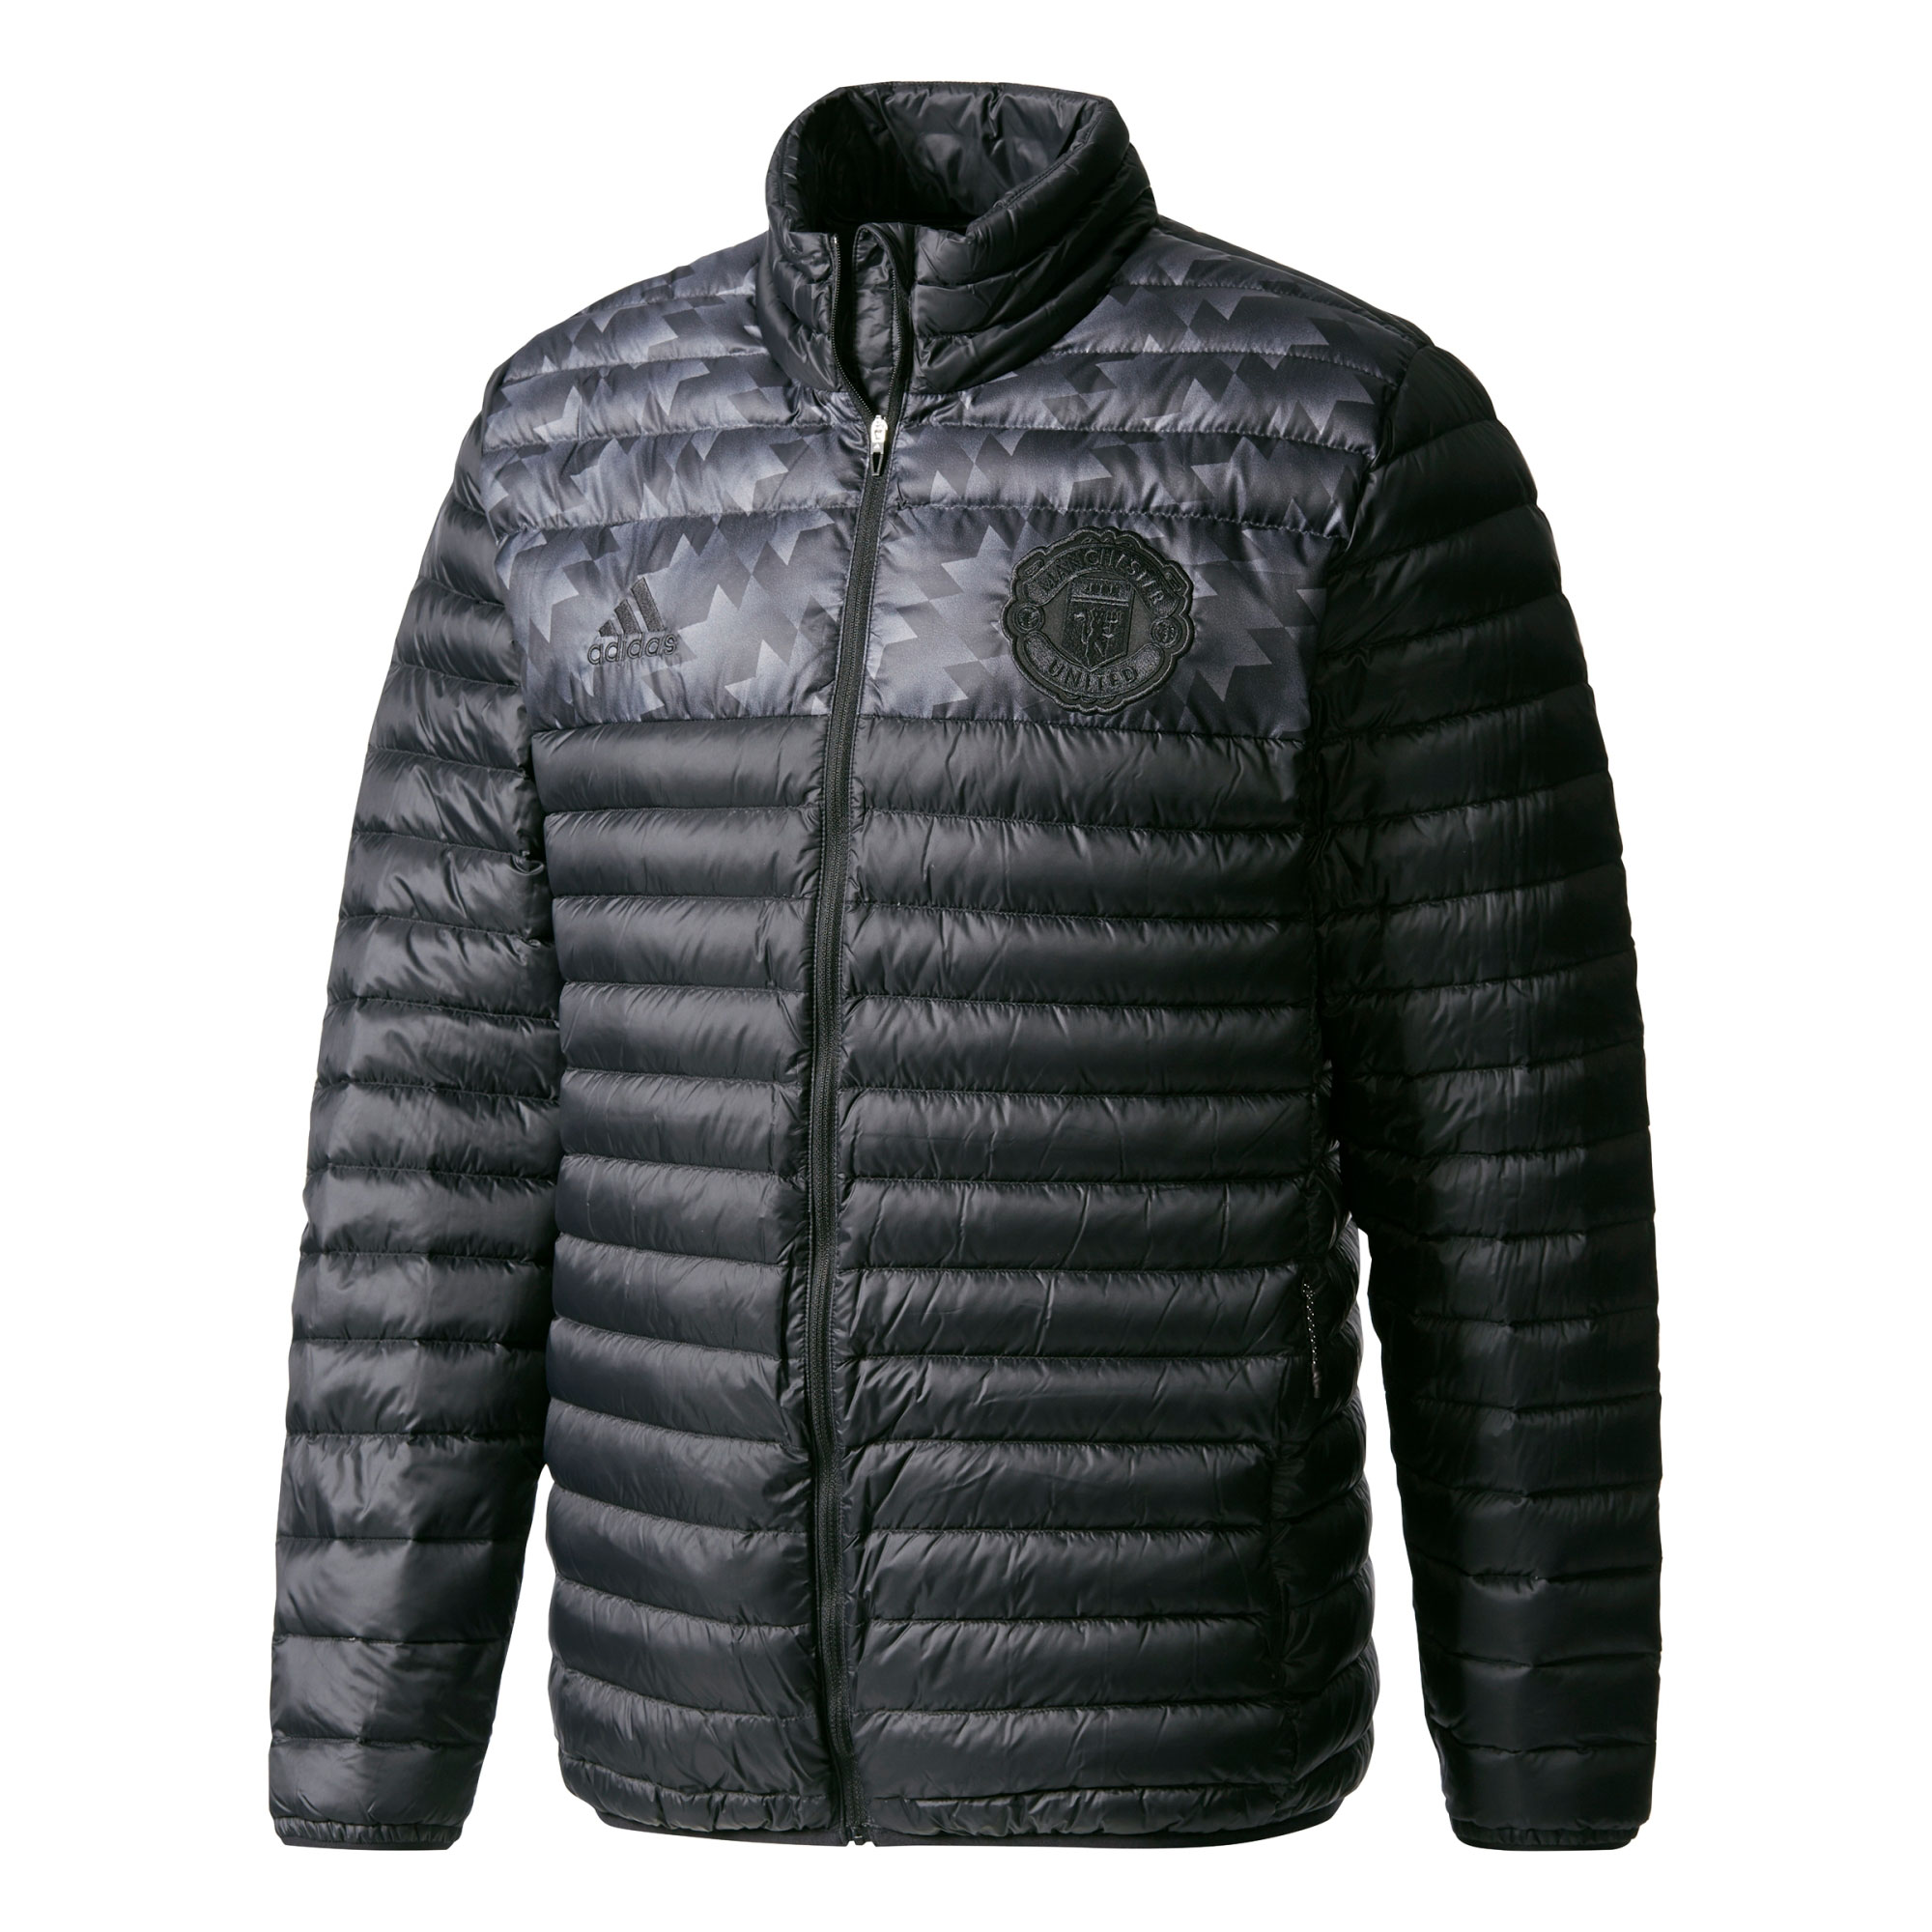 Manchester United Down Jacket - Black